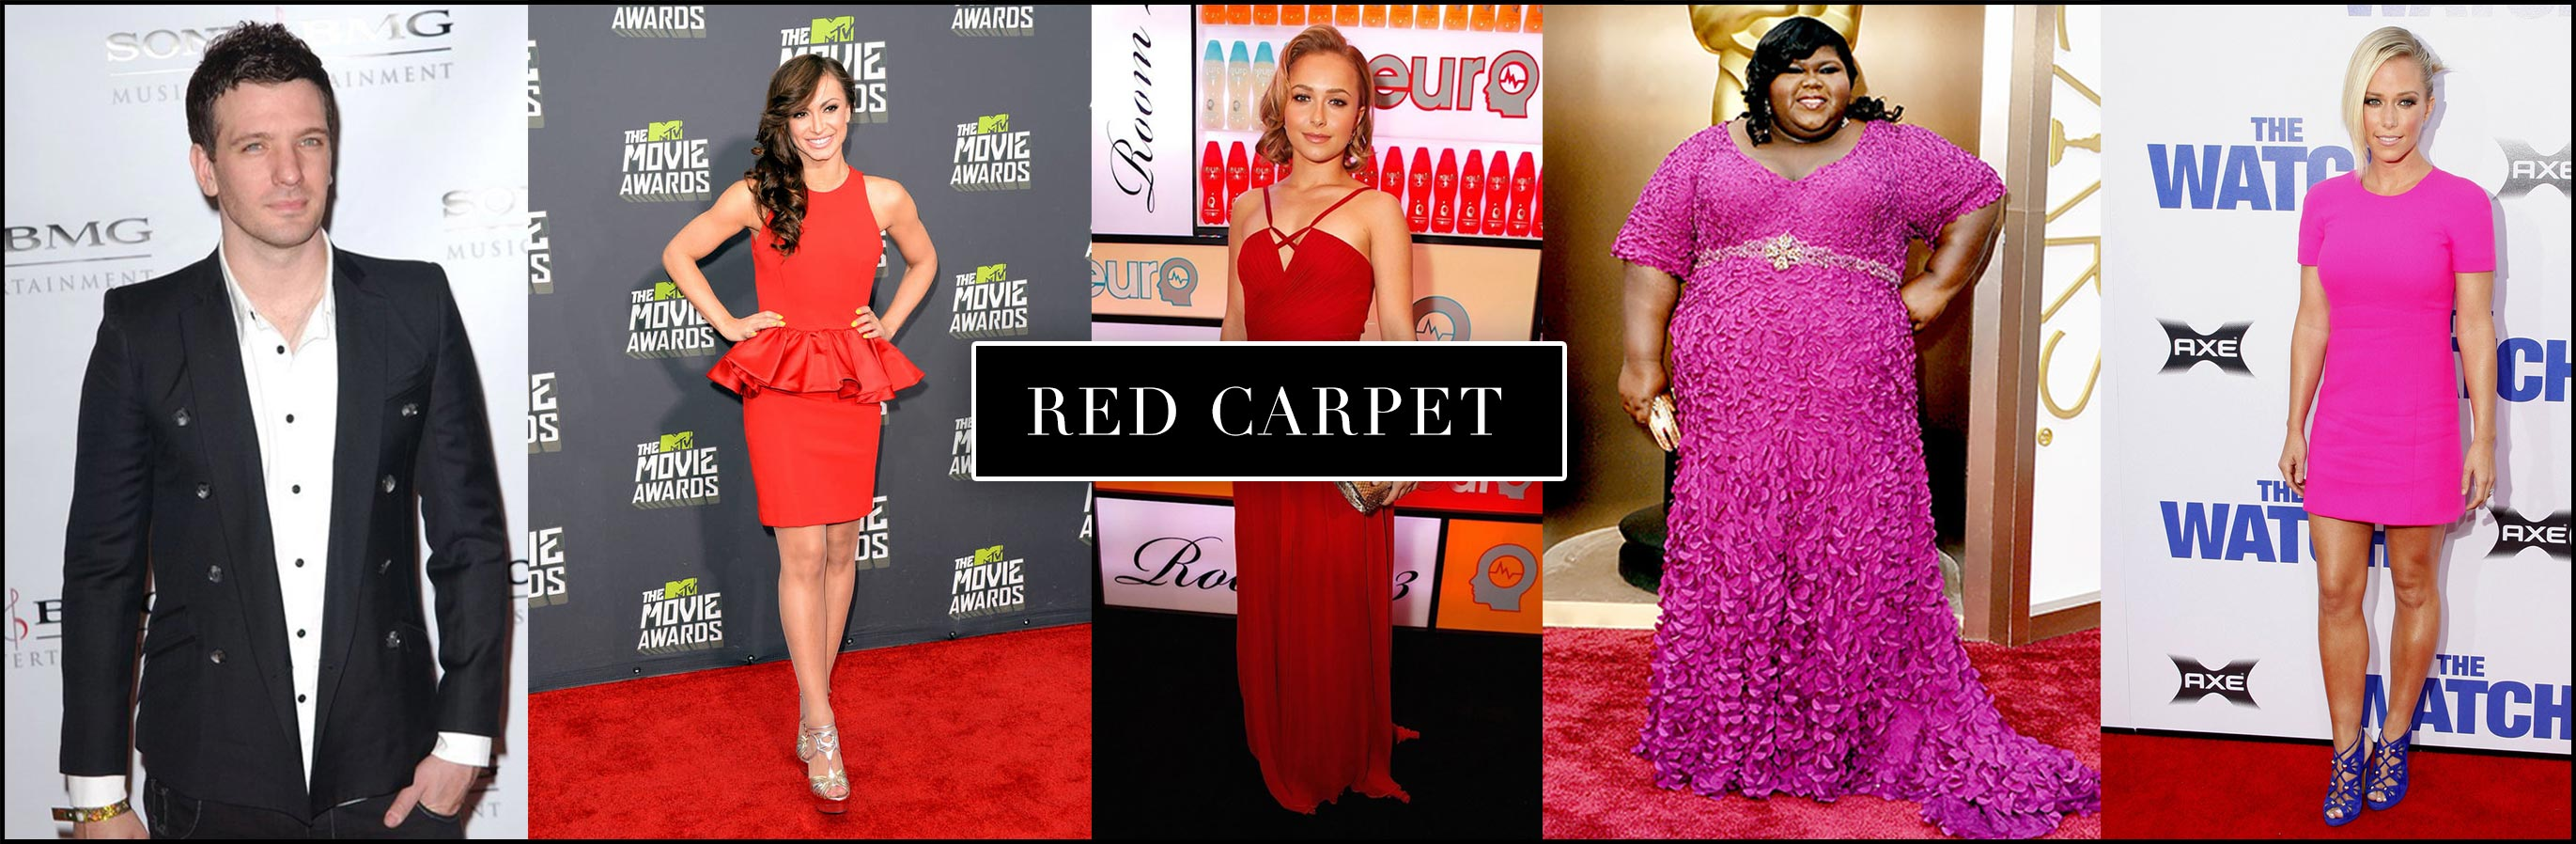 Daniel Musto's Red Carpet Portfolio